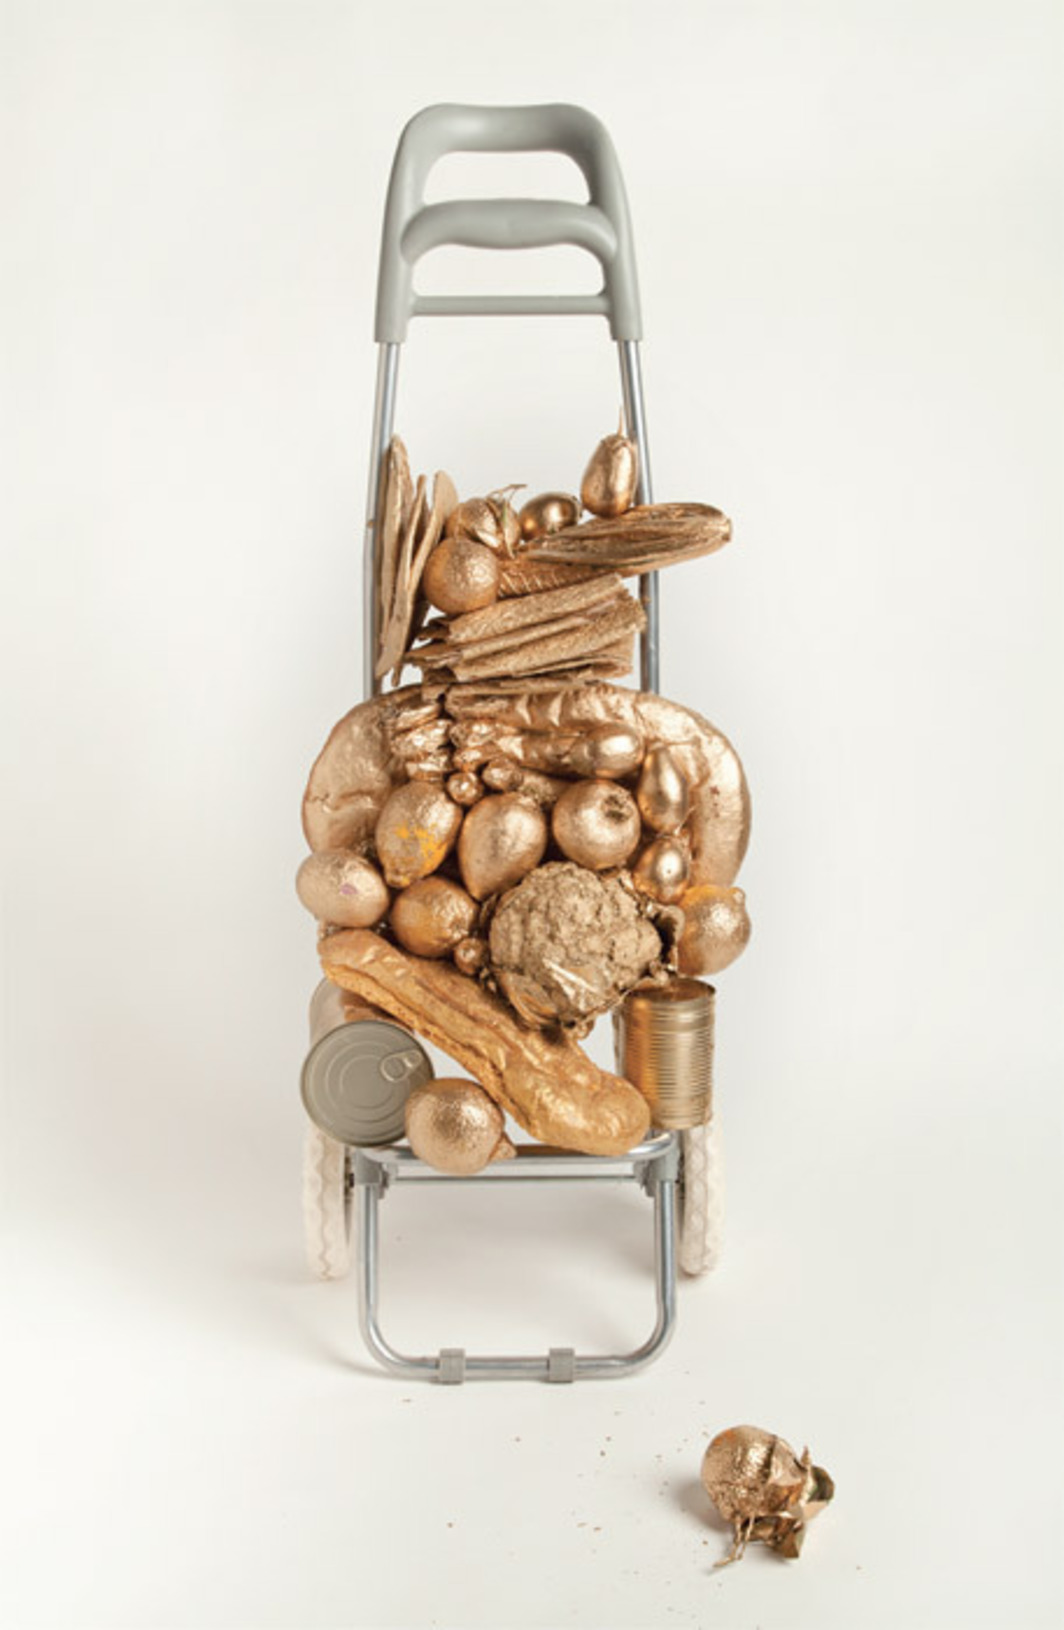 "Liz Glynn, Kreutzberg Hoard, 2011, shopping cart armature, produce, gold leaf, acrylic, 36 x 12 x 10""."